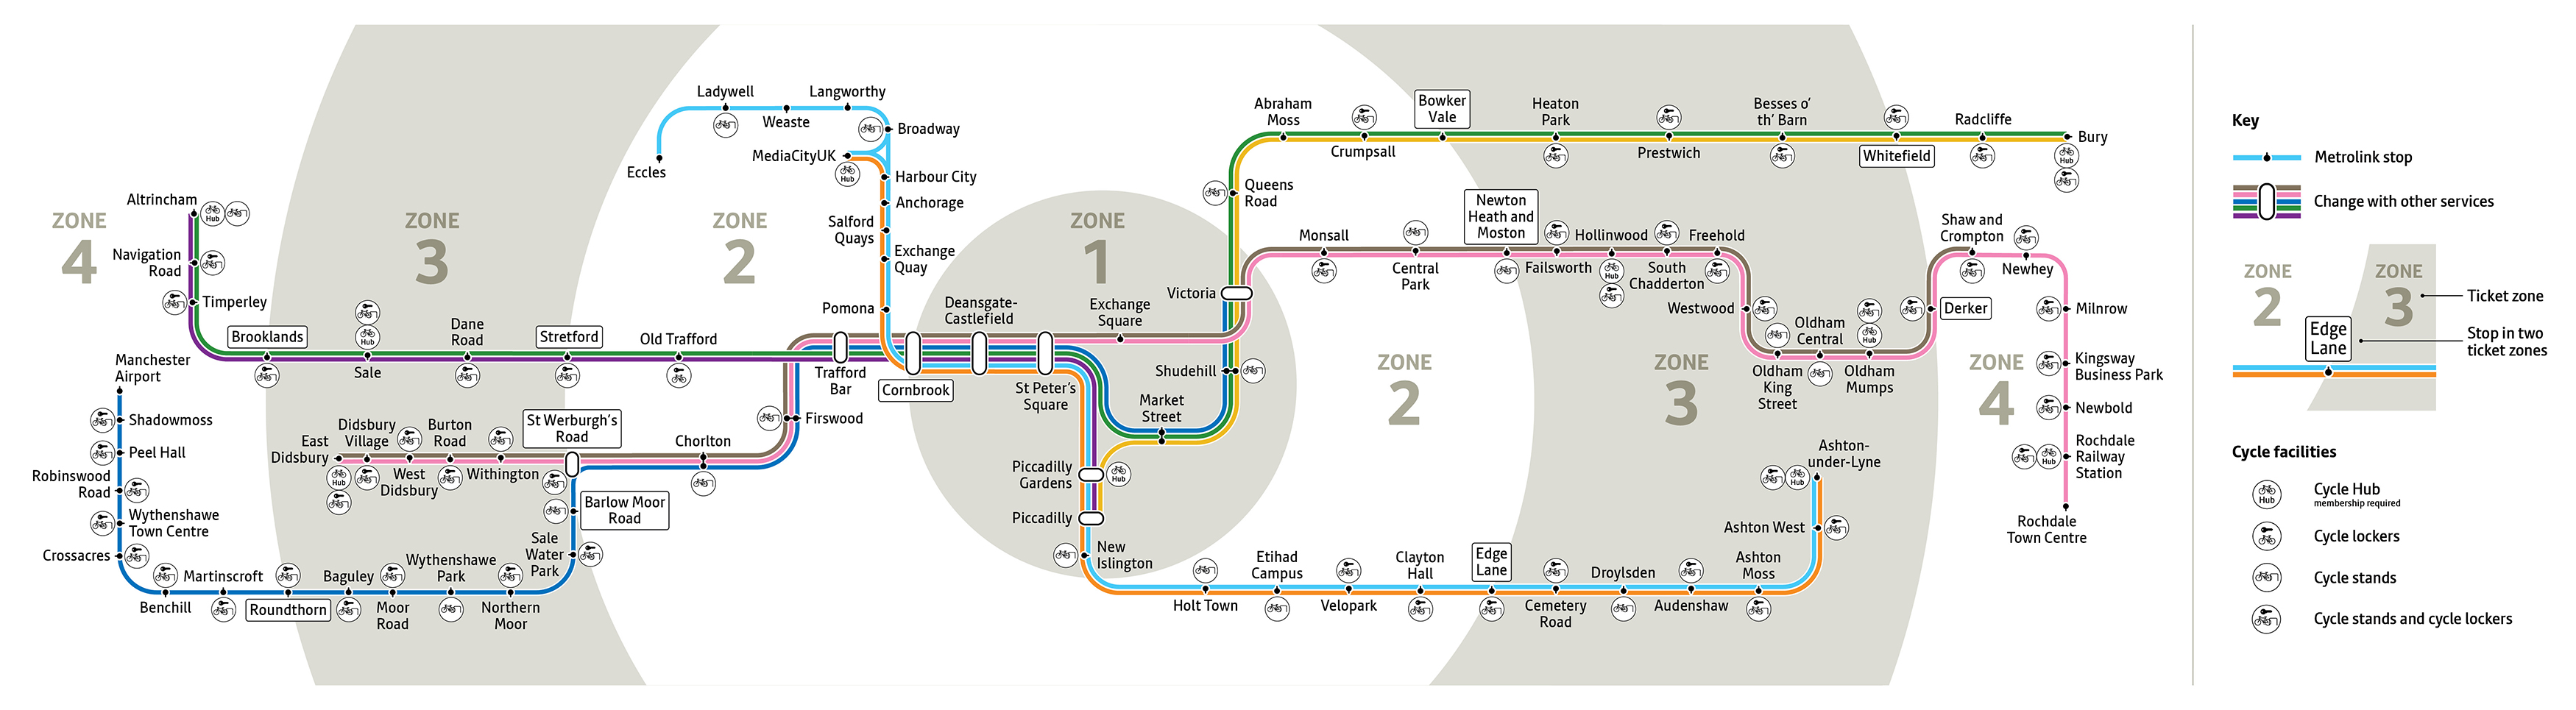 Gmp Subway Map.Maps Transport For Greater Manchester